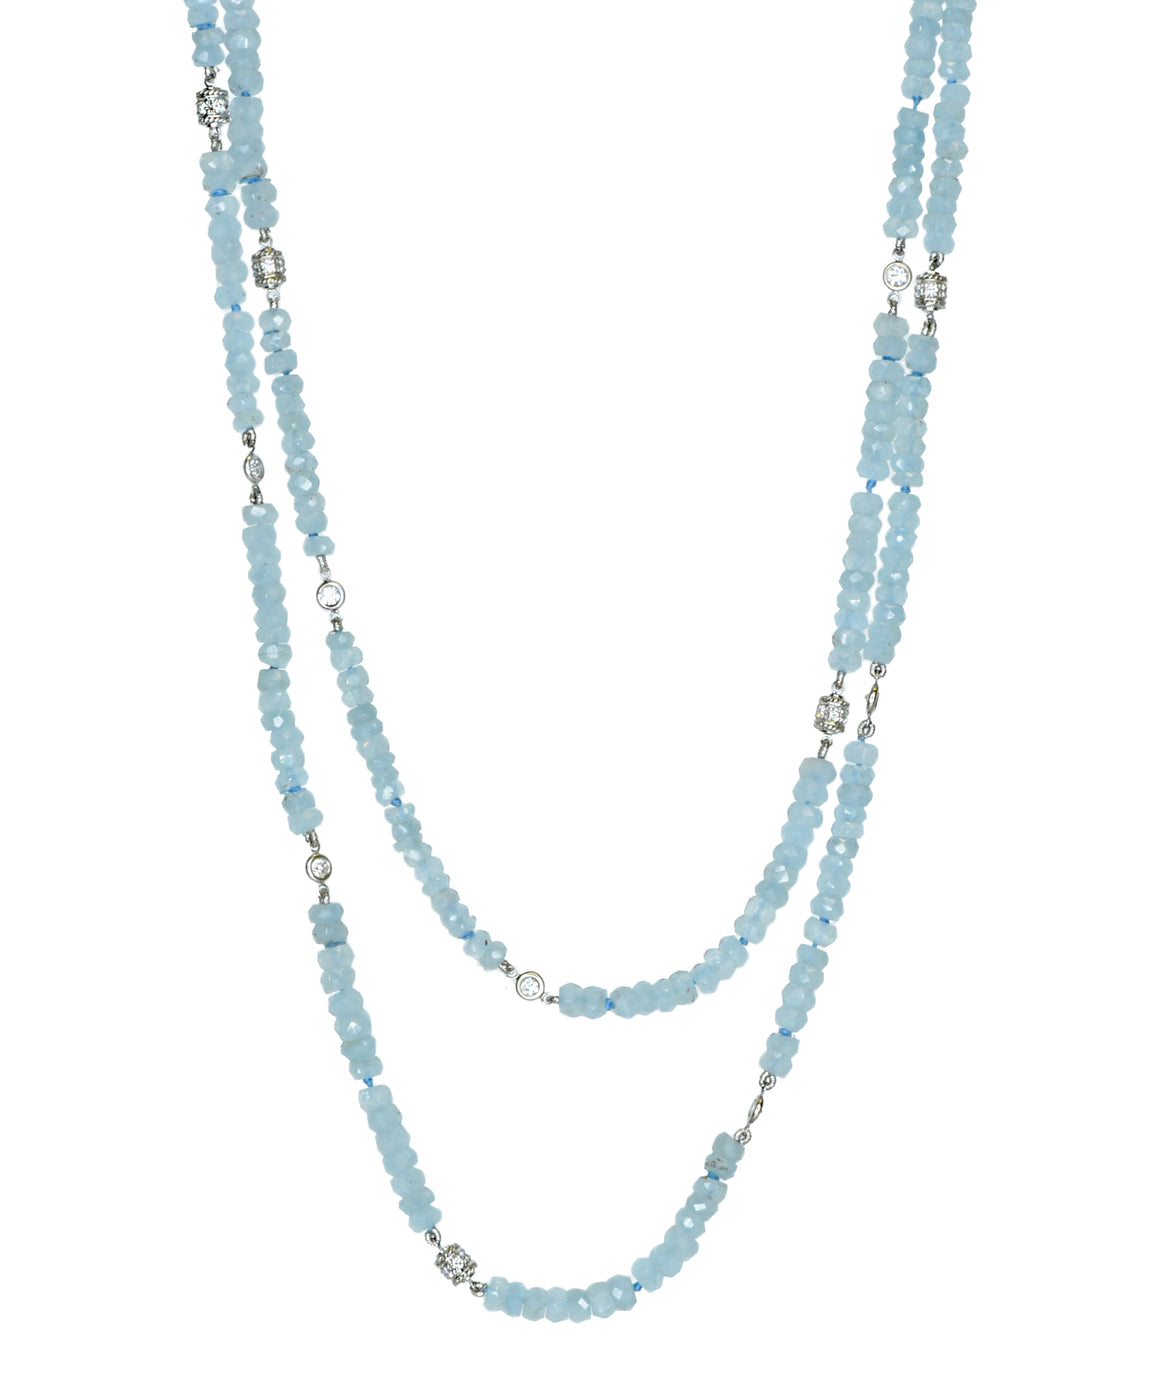 Aquamarine necklace with diamond stations